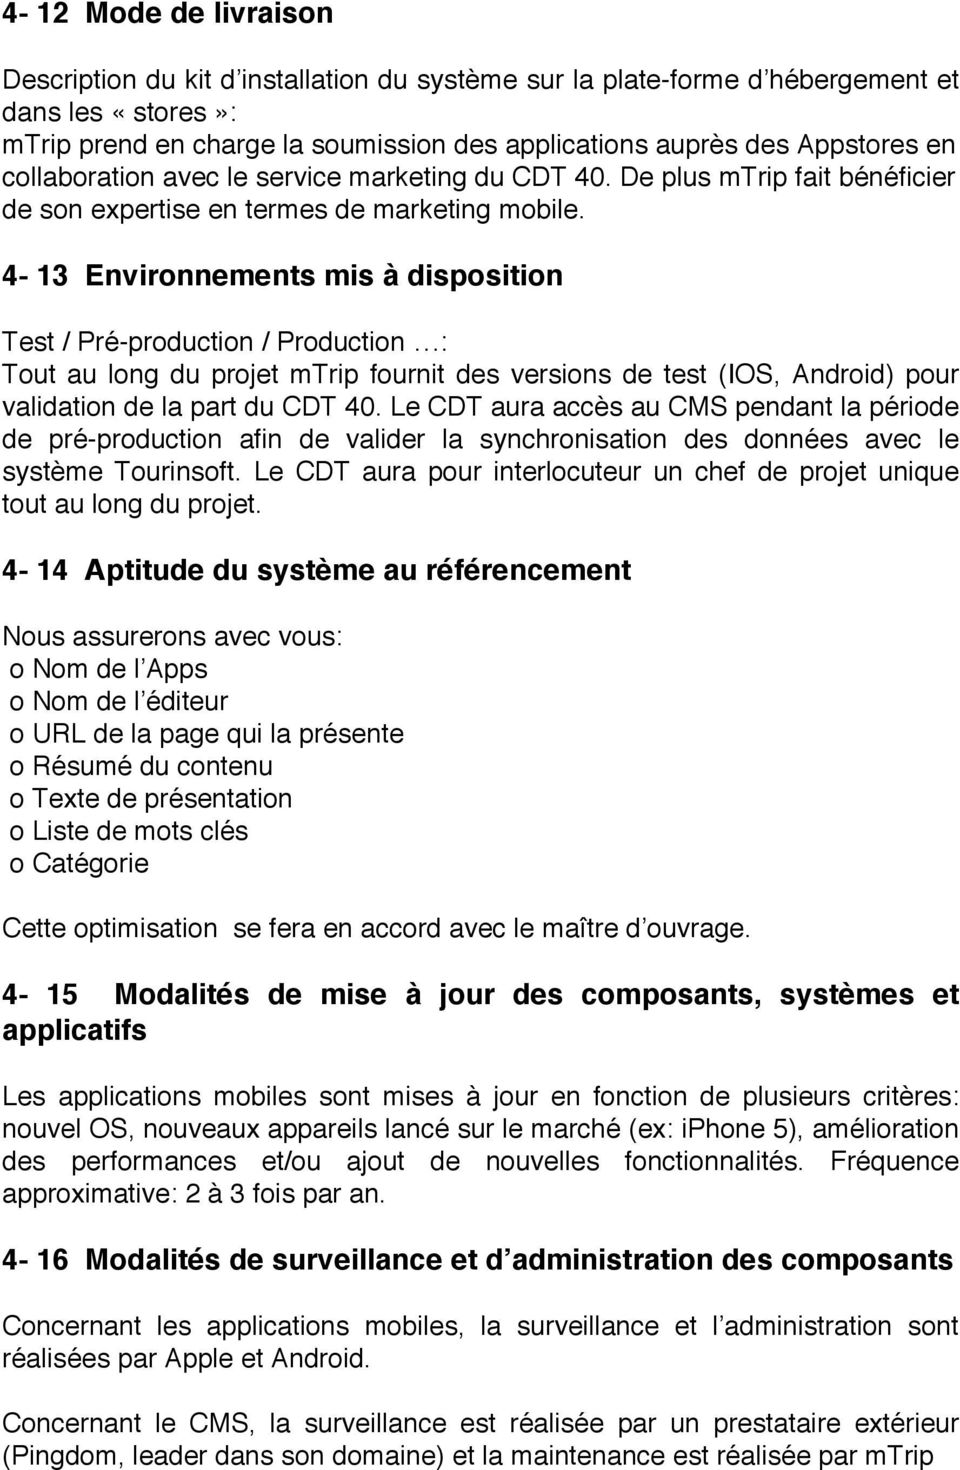 4-13 Environnements mis à disposition Test / Pré-production / Production : Tout au long du projet mtrip fournit des versions de test (IOS, Android) pour validation de la part du CDT 40.